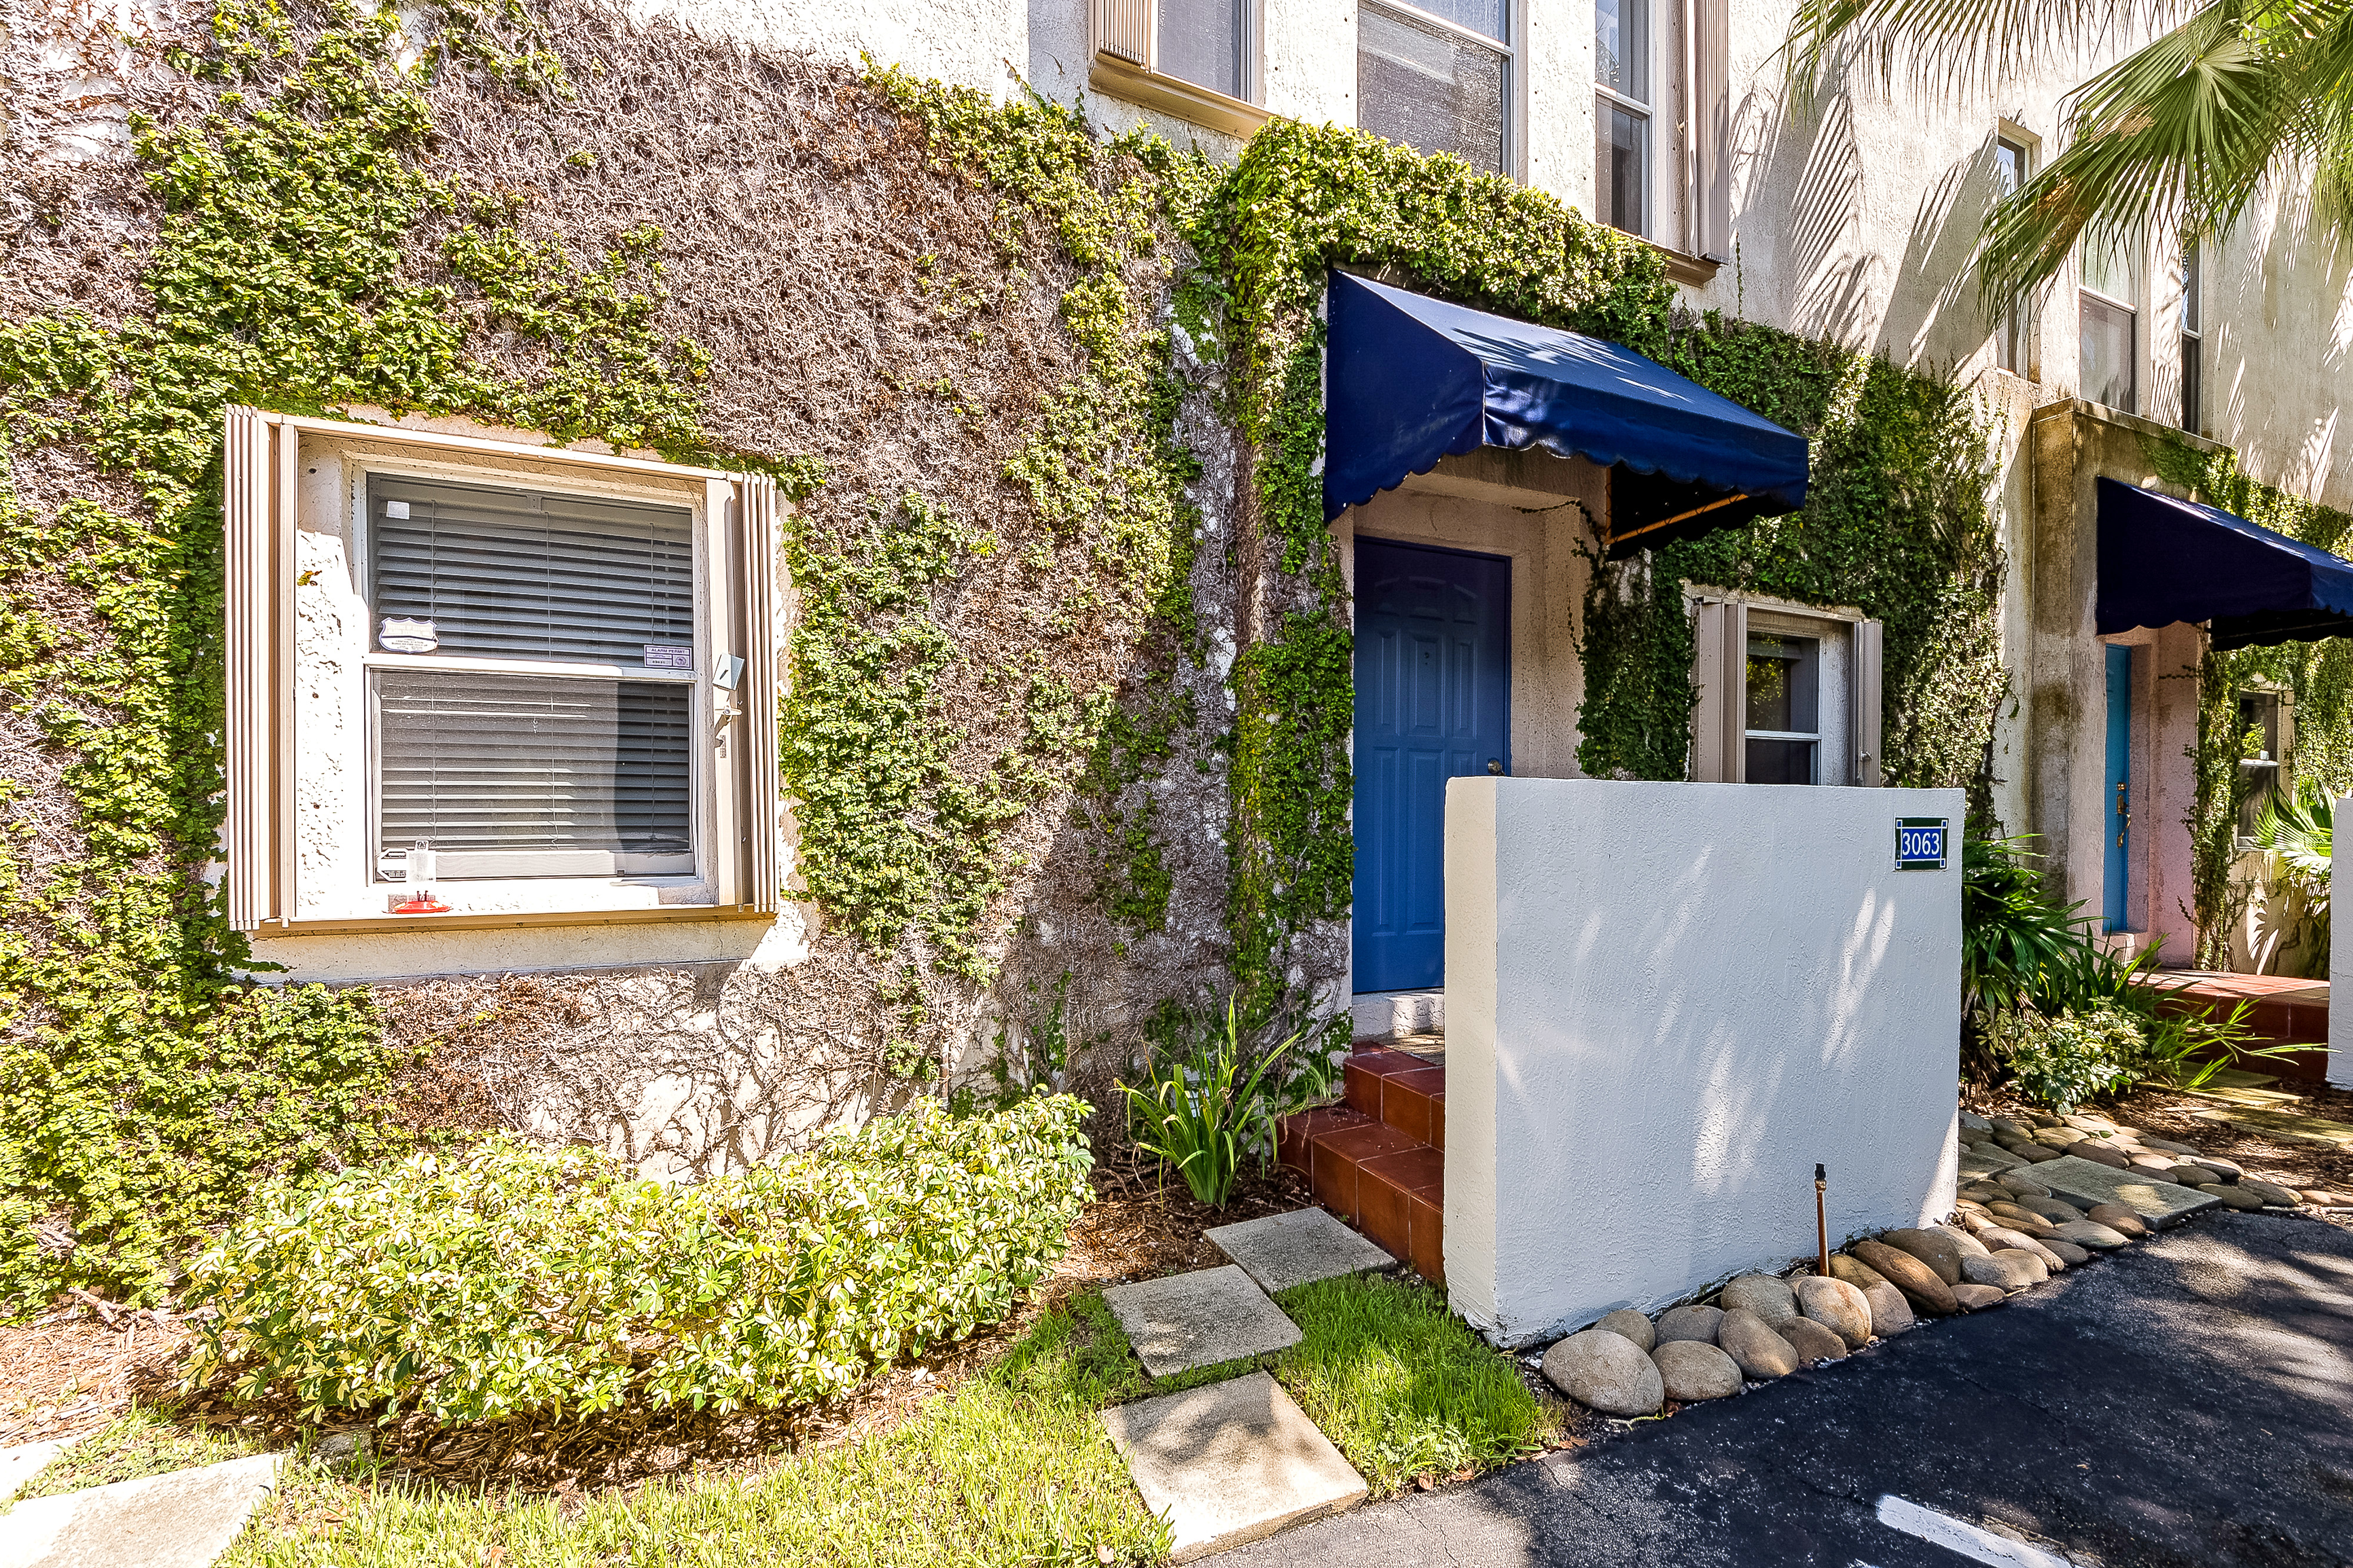 Townhouse for Sale at 3063 Center Street #15 3063 Center Street 15 Miami, Florida, 33133 United States